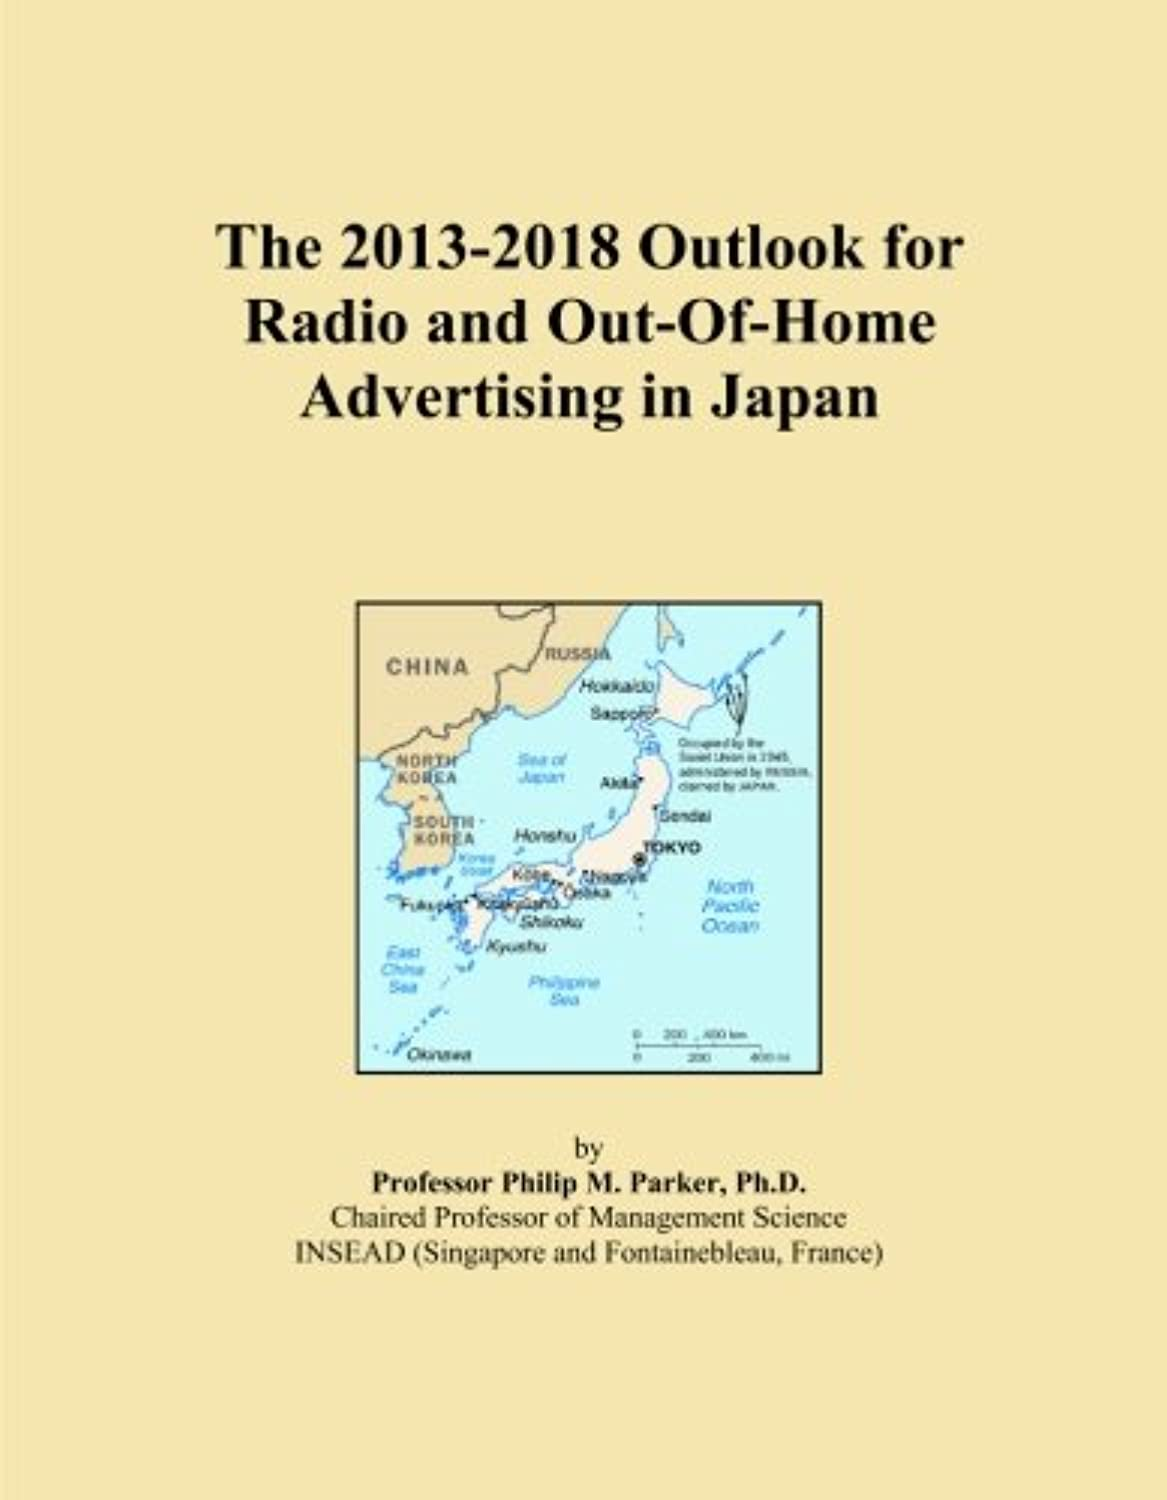 The 2013-2018 Outlook for Radio and Out-Of-Home Advertising in Japan